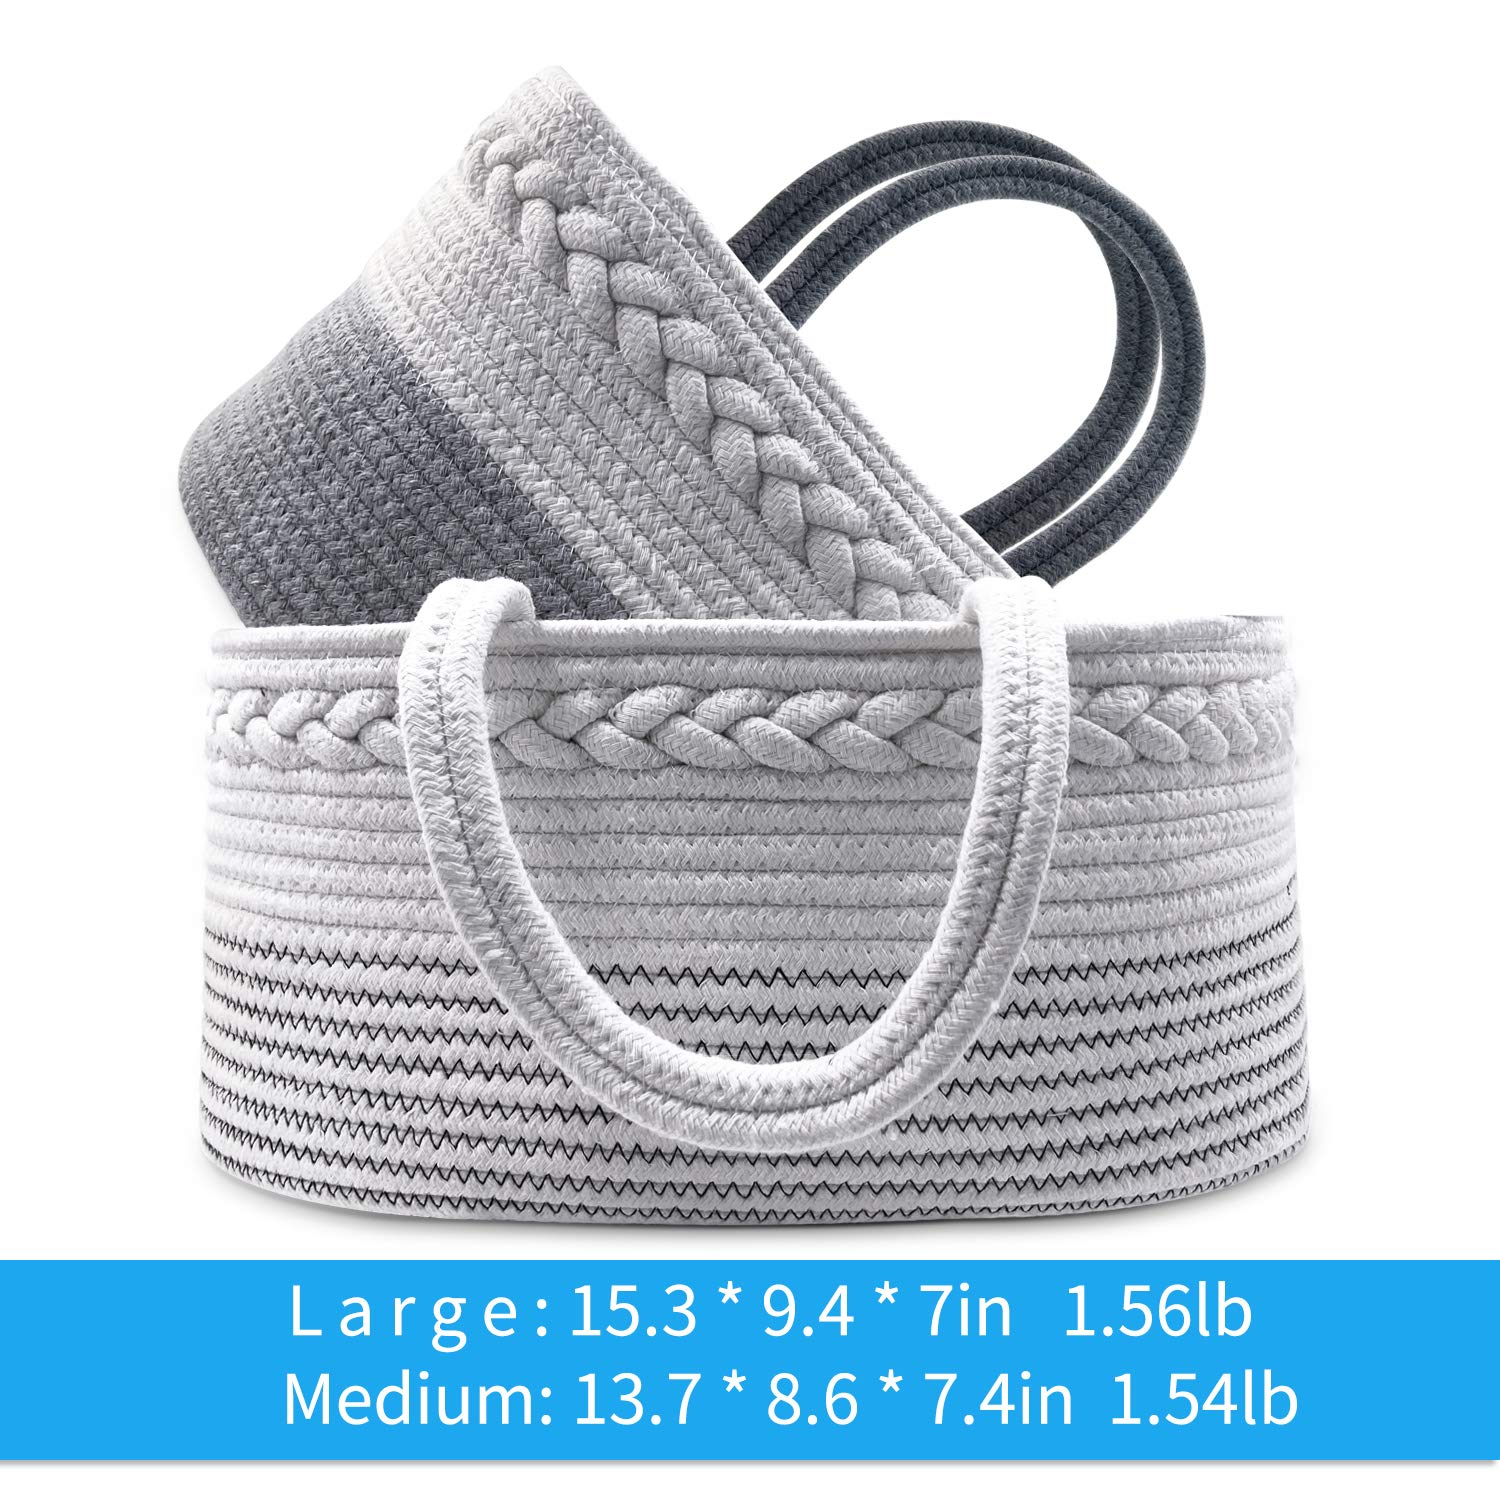 Gray//White 100/% Cotton Rope Nursery 2 Packs Baby Diaper Caddy Organizer Stylish Portable Rope Nursery Storage Bin with Removable Insert for Changing Table Baby Shower